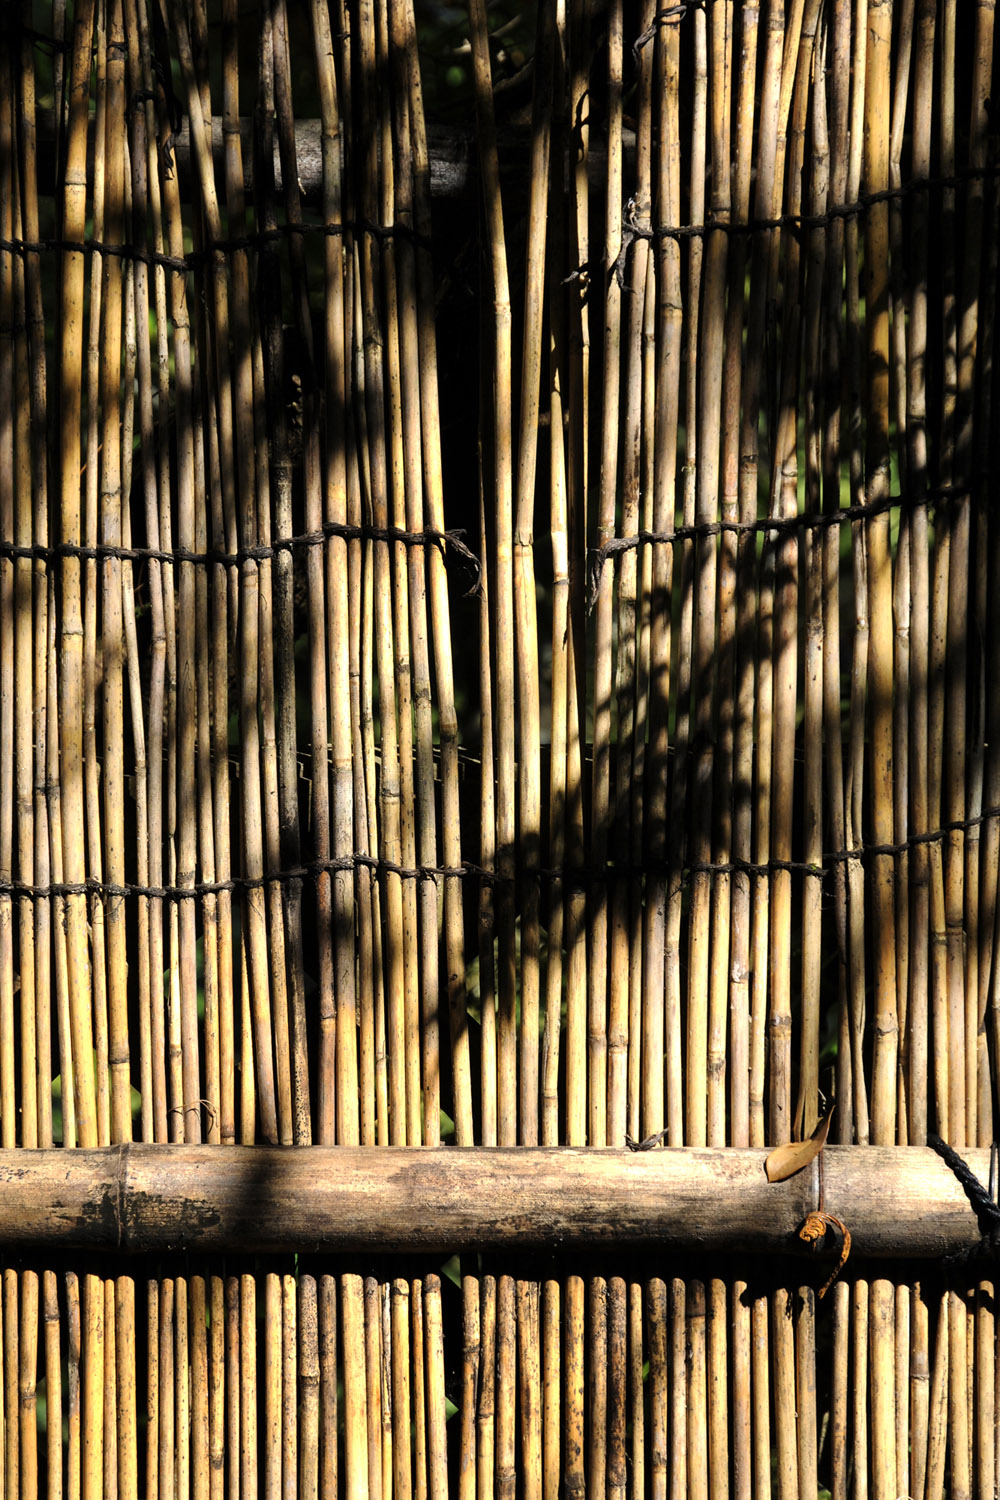 Bamboo fence in Kibune